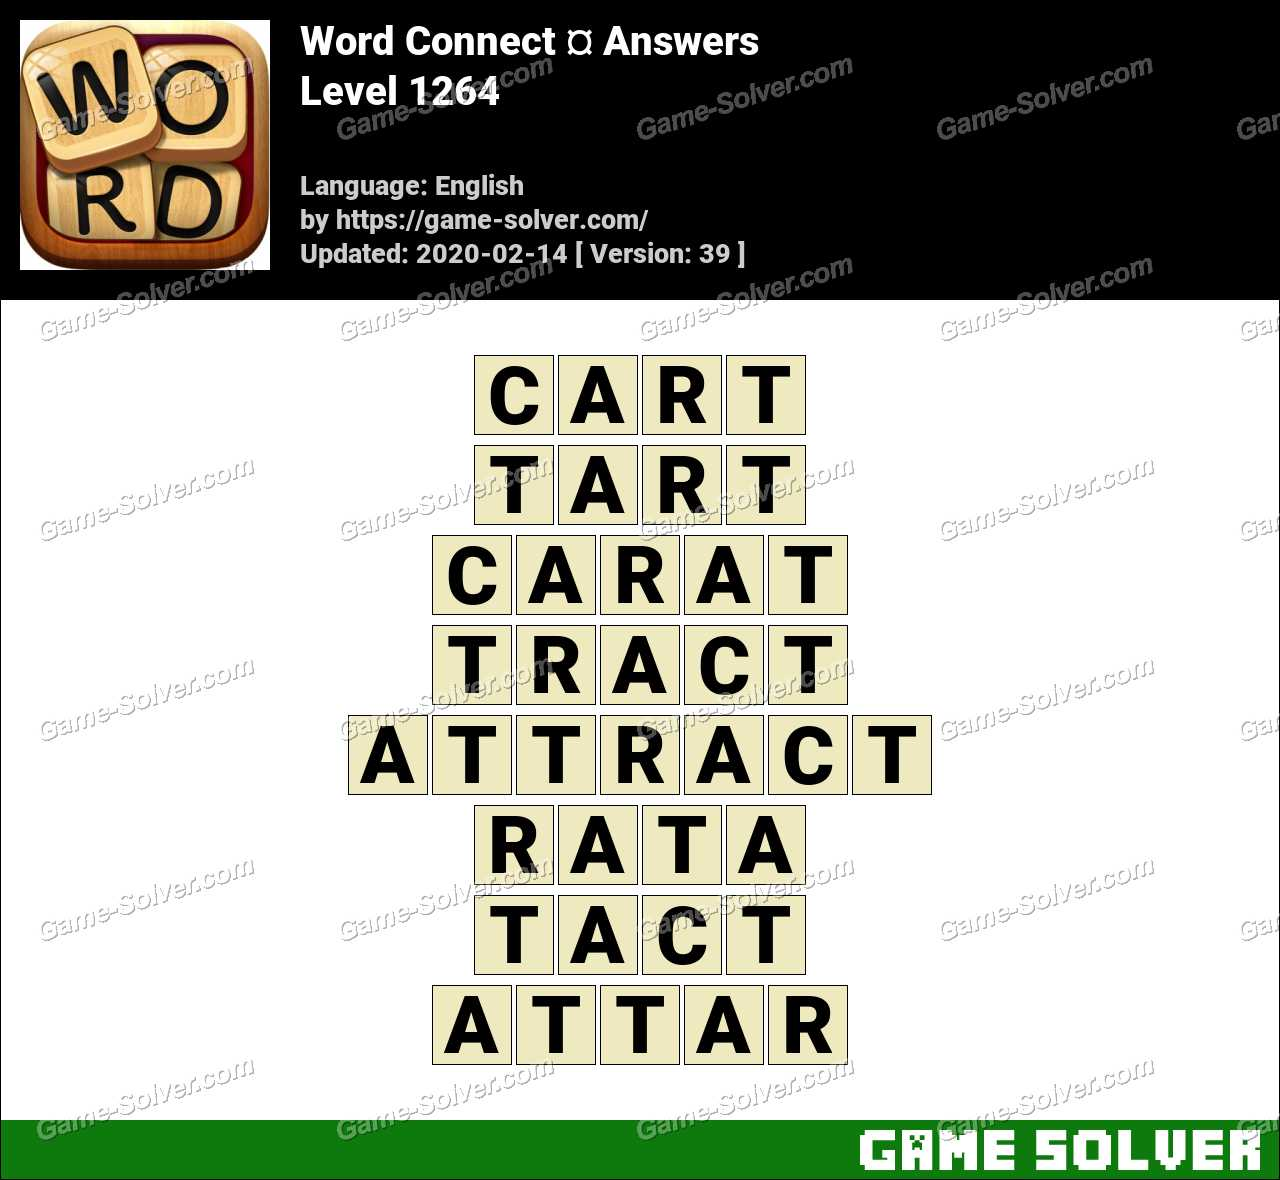 Word Connect Level 1264 Answers